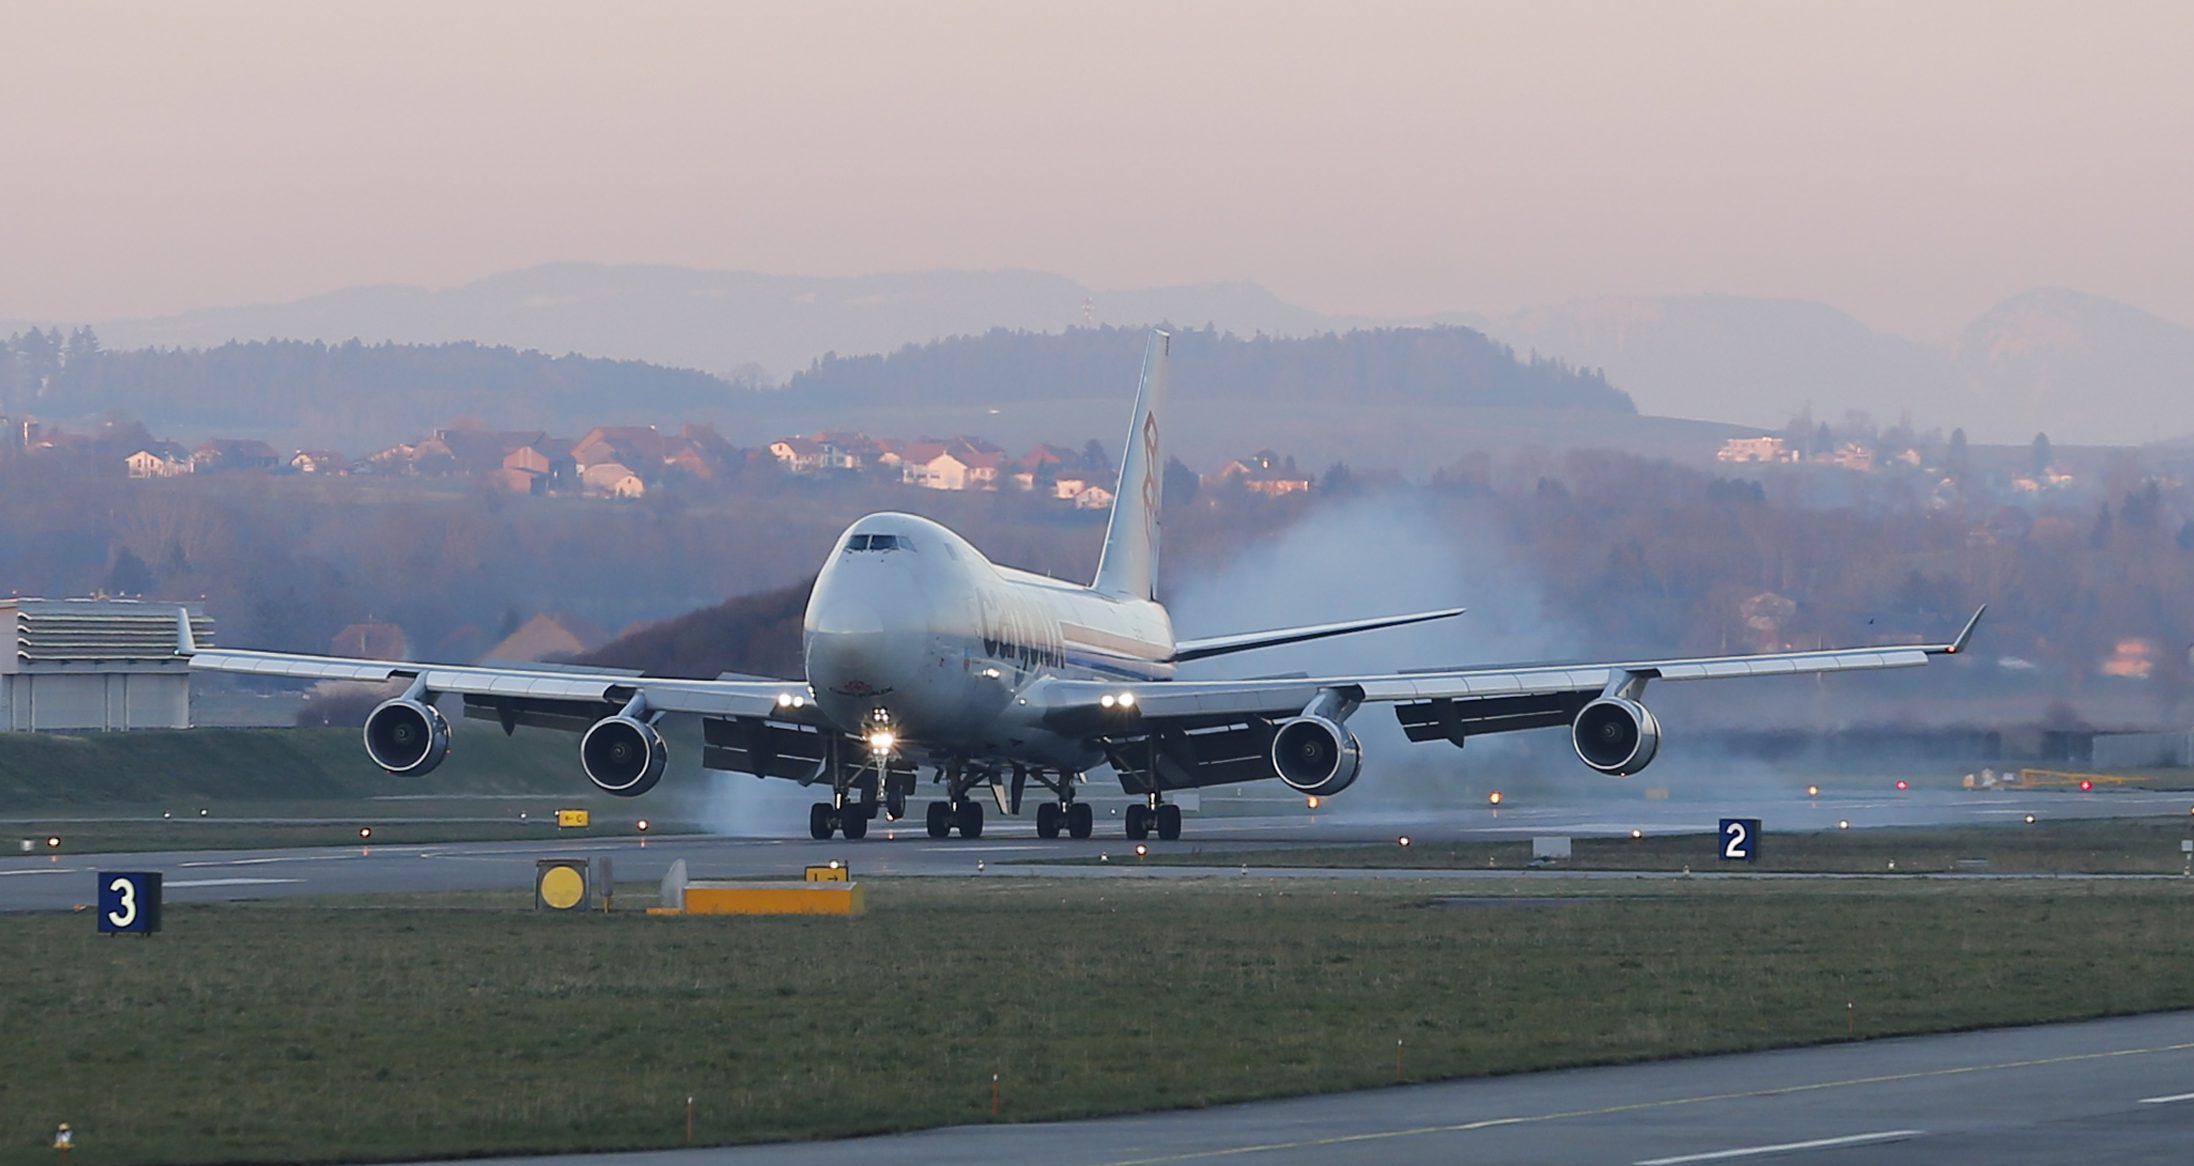 A Cargolux Boeing 747 cargo aircraft lands to load the Solar Impulse 2 aircraft at Payerne airport